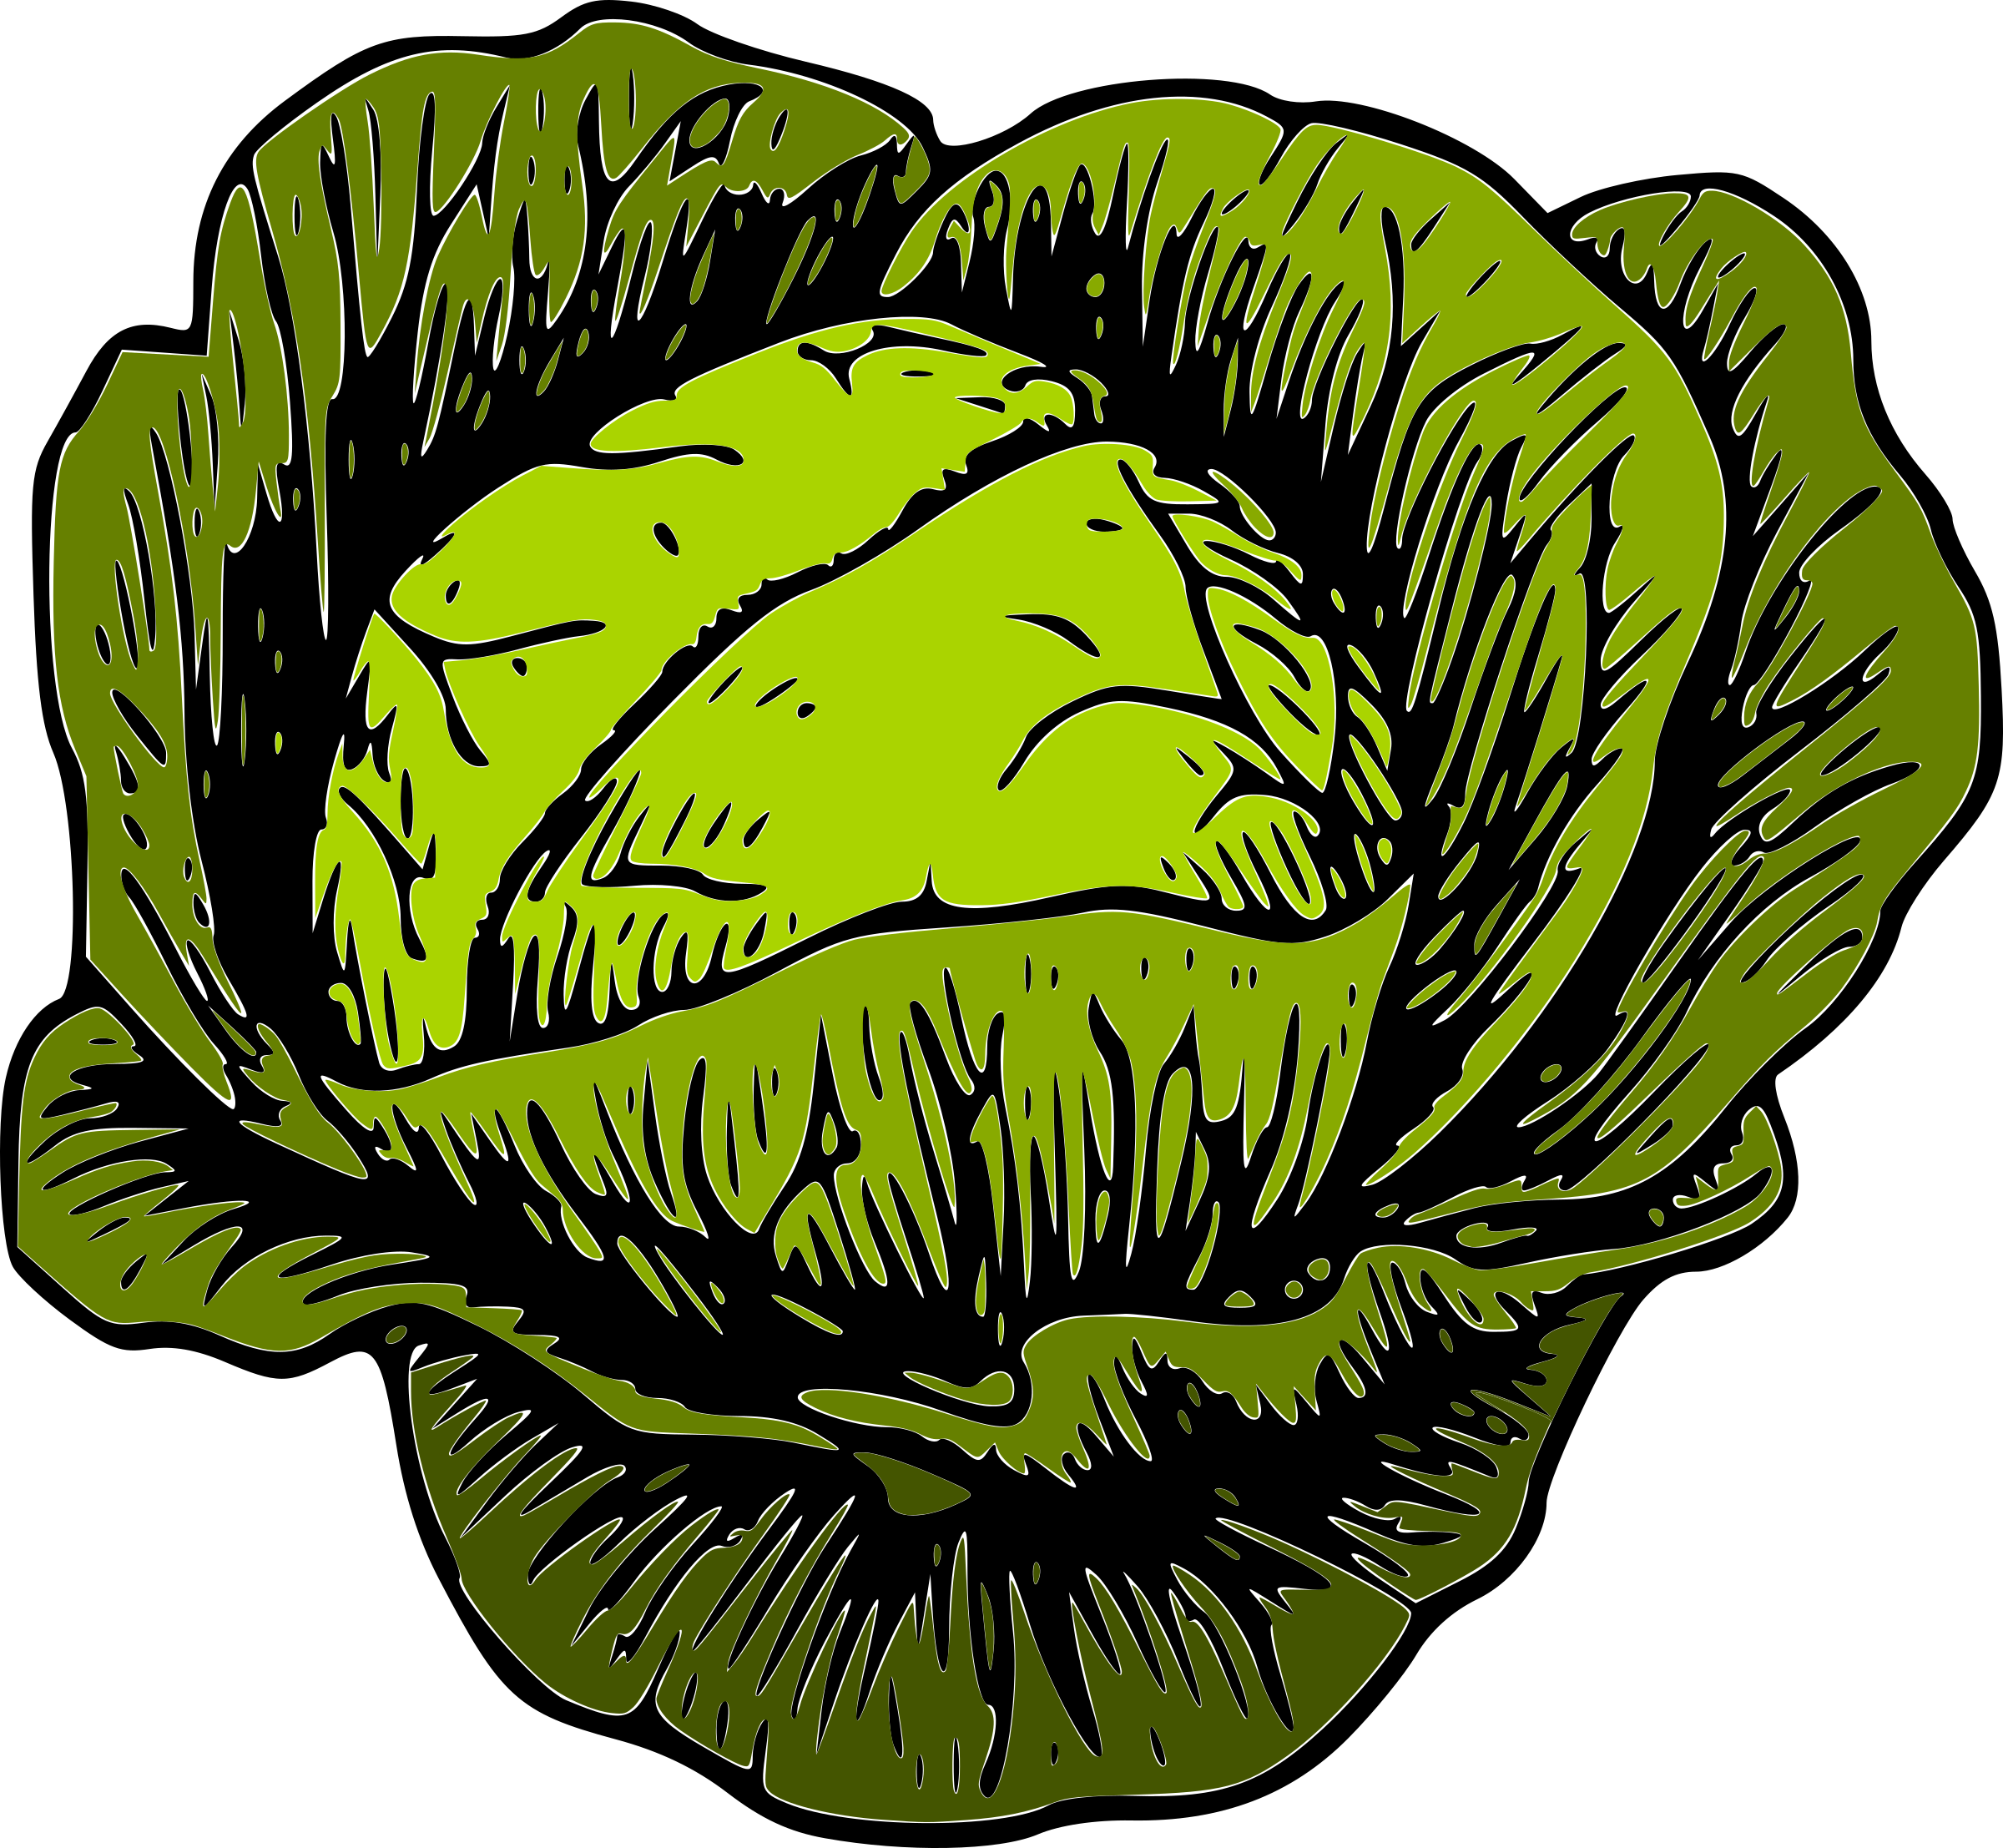 Cabbage clipart vegetable #5 - Cabbage Clipart